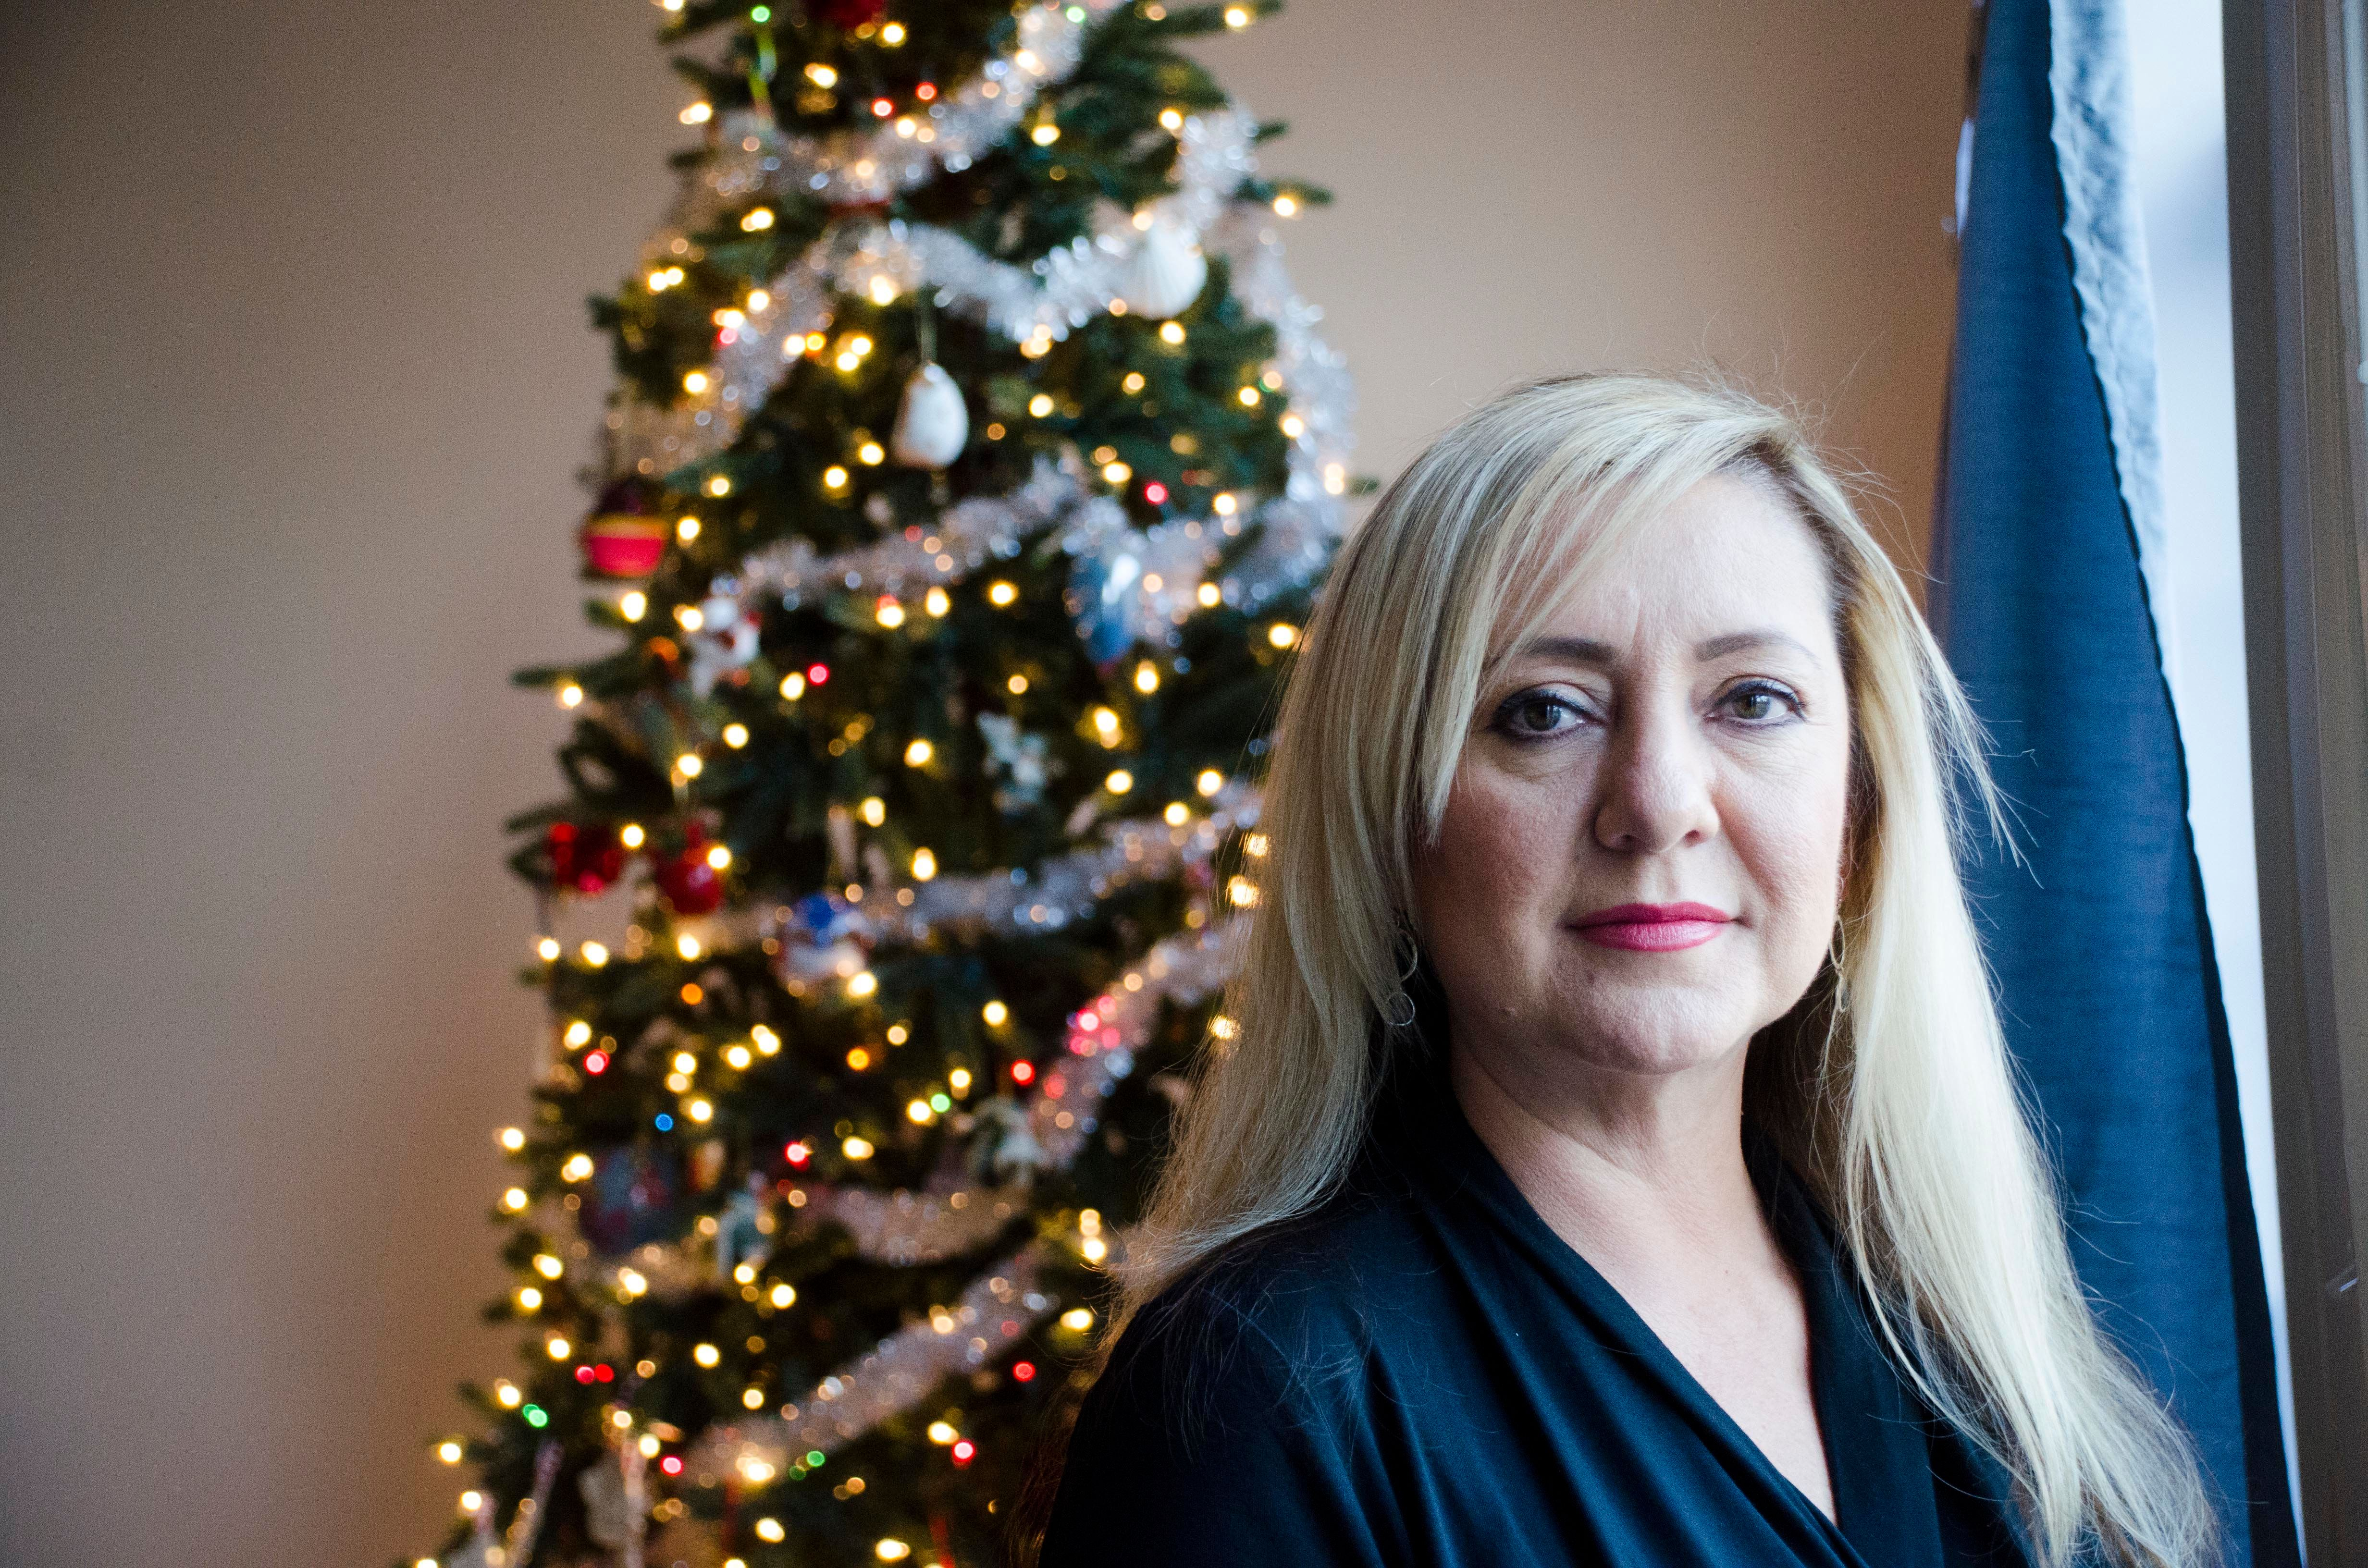 Lorena Bobbitt cut off her husband's penis in 1993. Now she runs a charity that helps domestic violence...